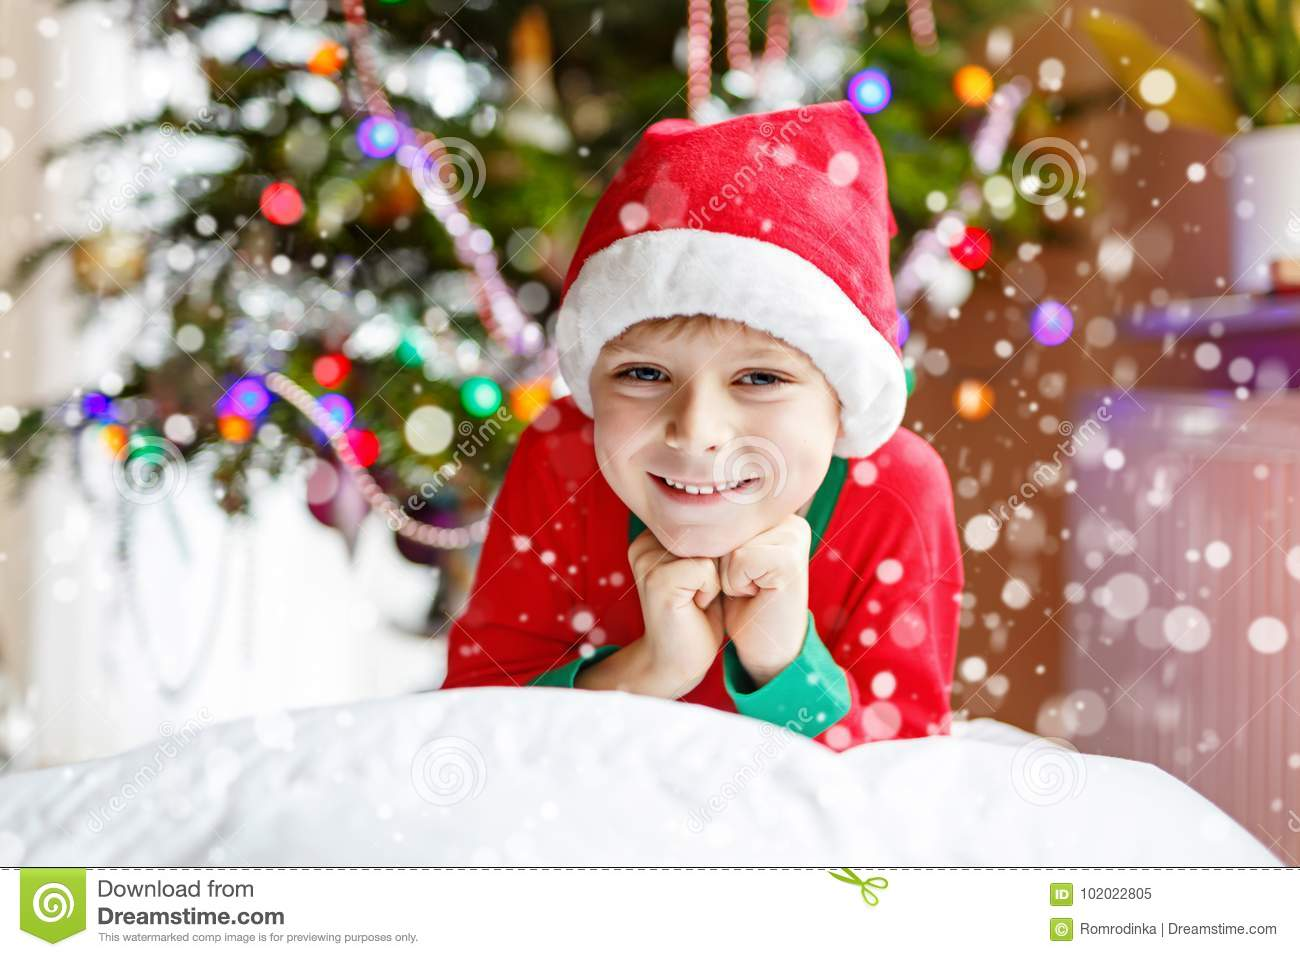 d102283c45c Little kid boy in santa hat with Christmas tree and lights on background.